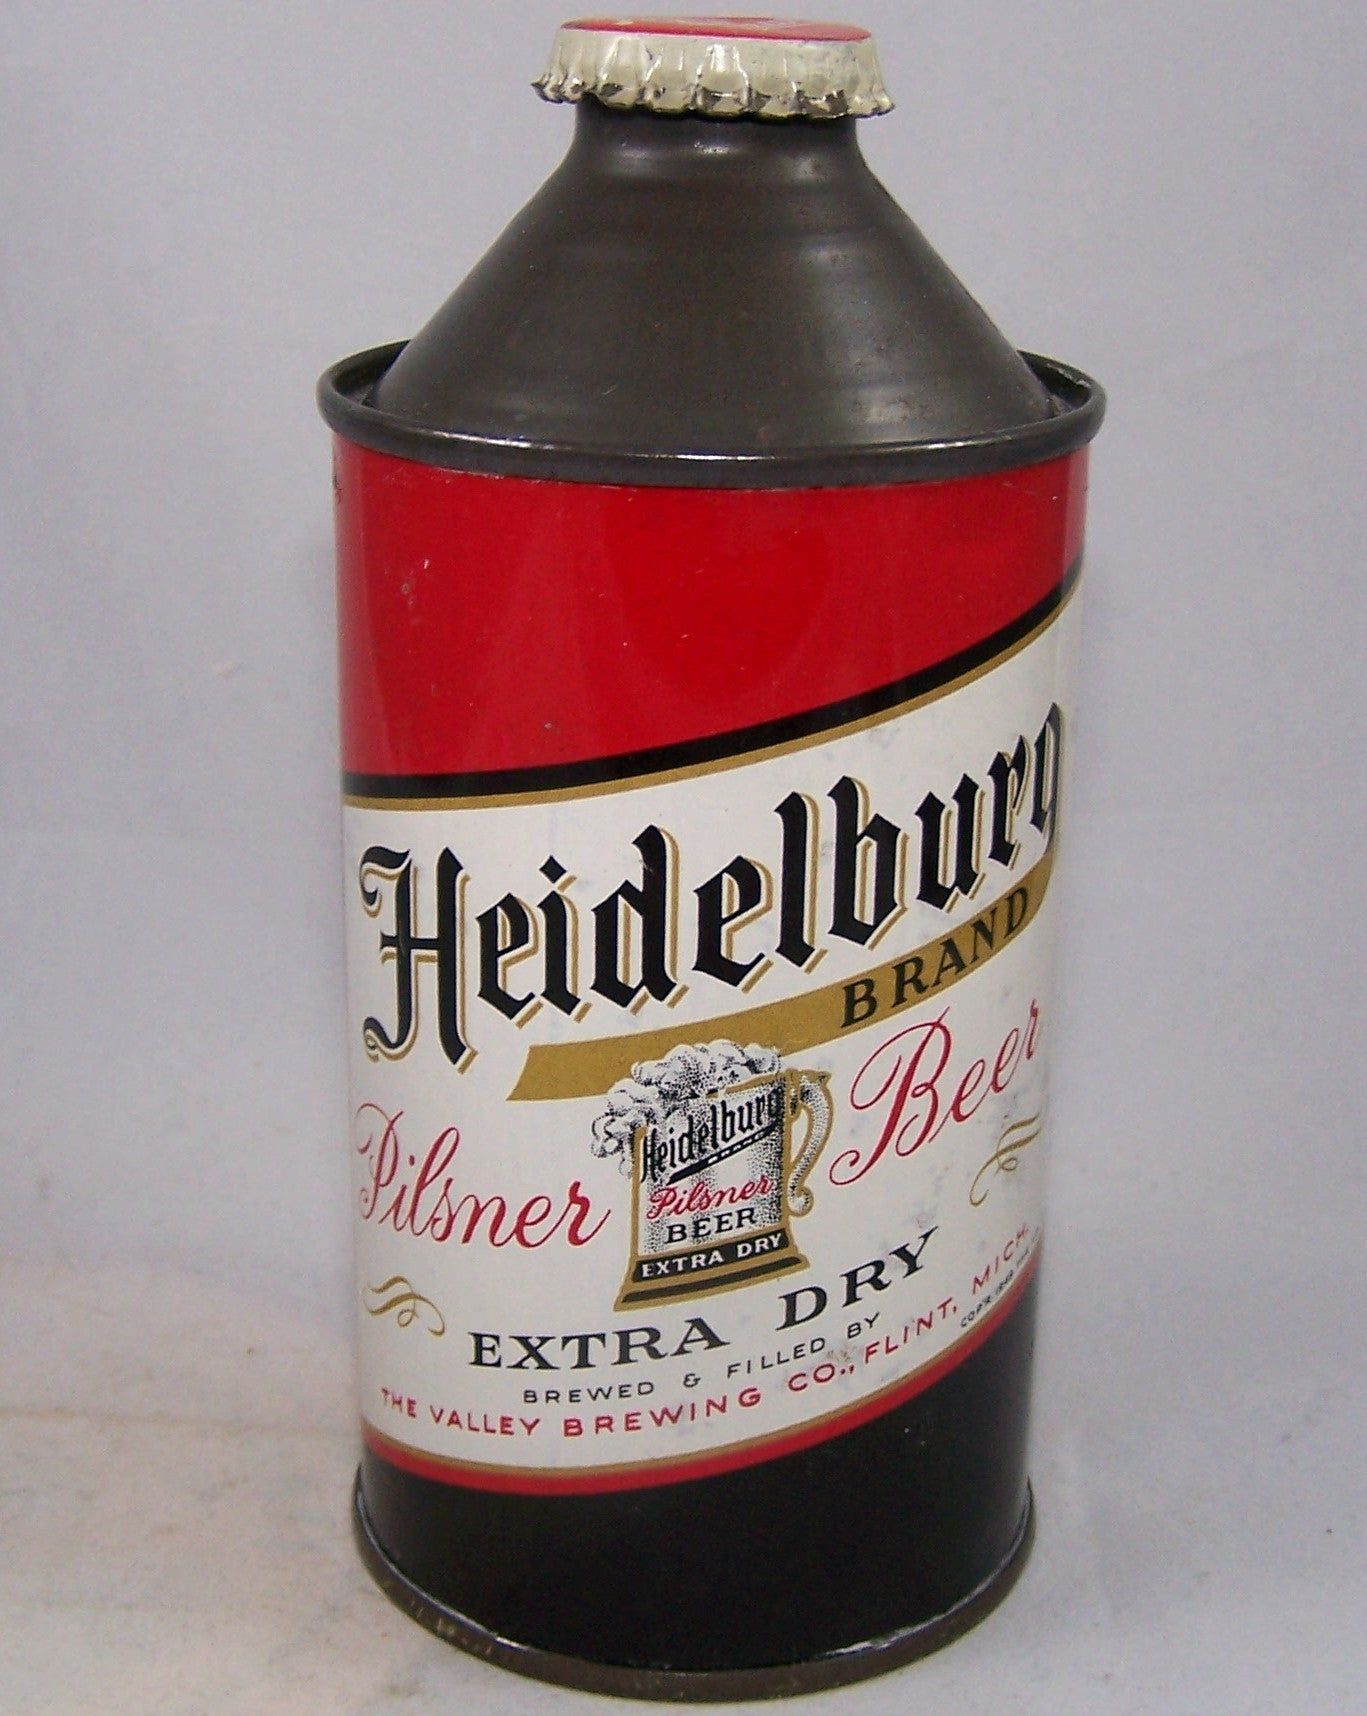 Heidelburg Extra Dry Pilsner Beer, USBC 168-2 Grade 1 to 1/1+ Sold on 11/08/15